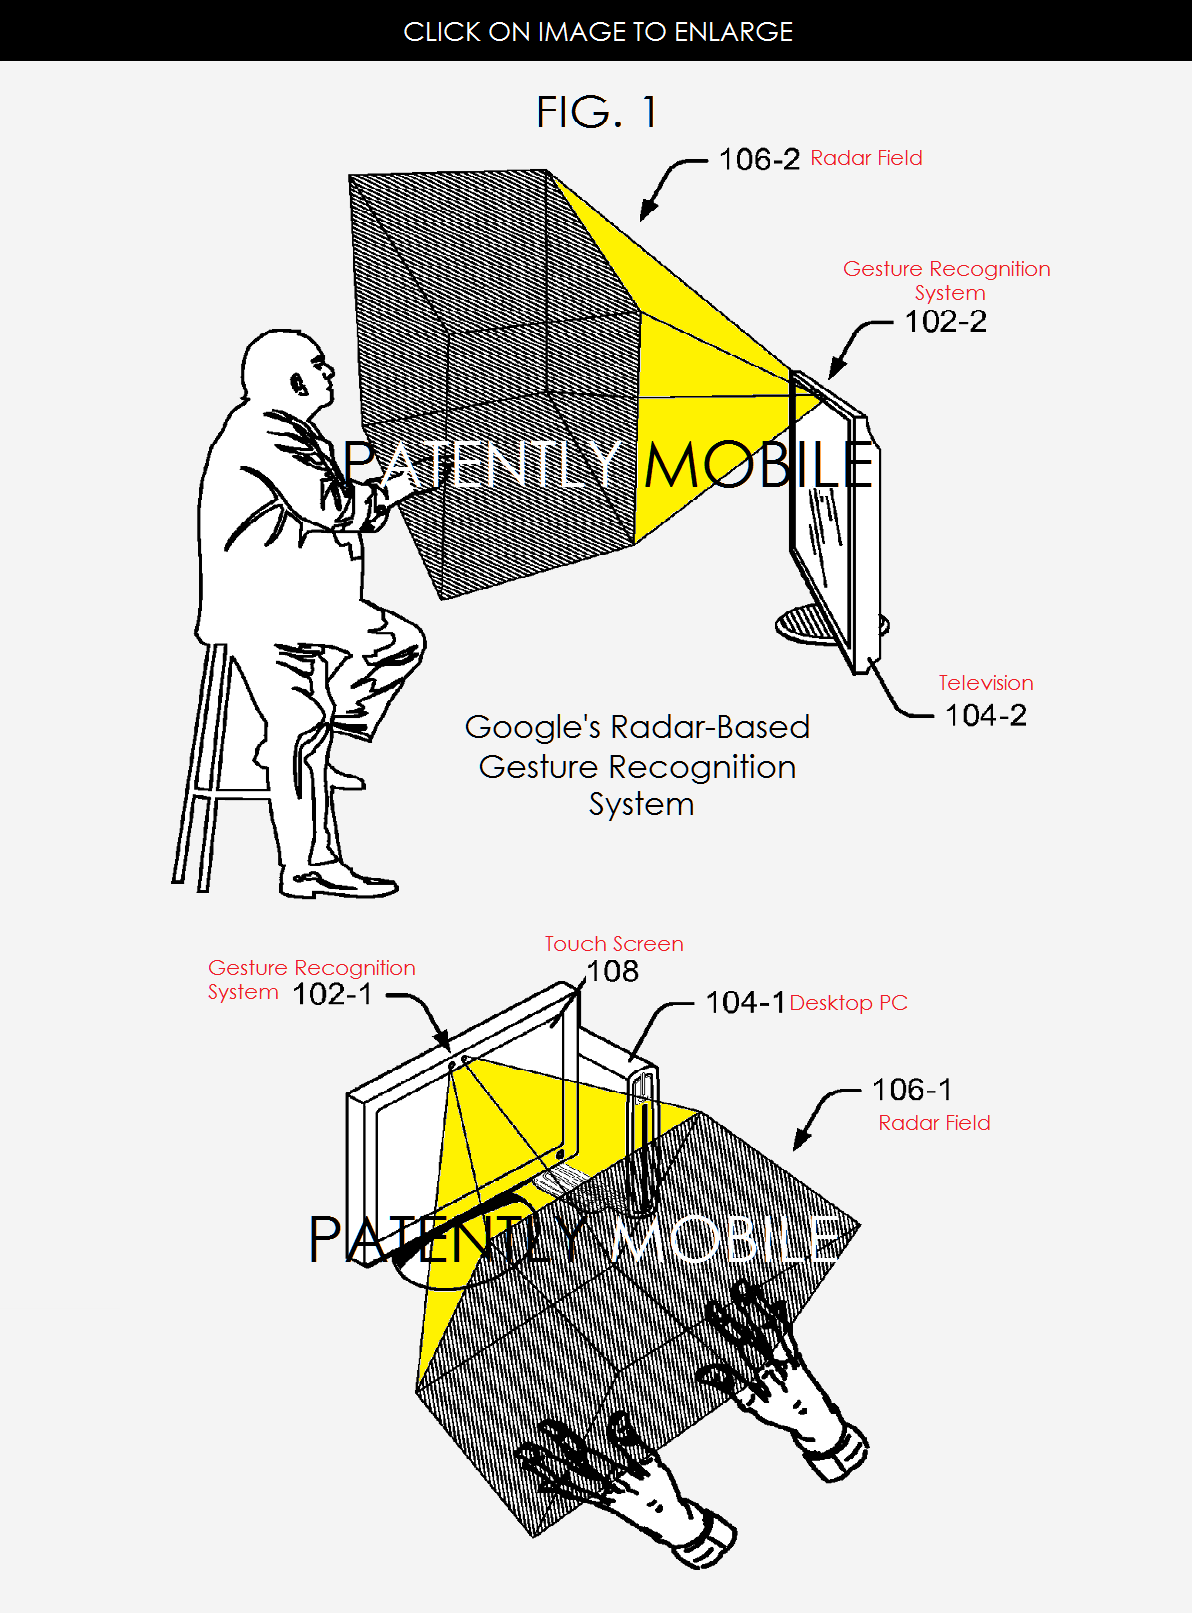 Patent drawing for gesturing system by Google